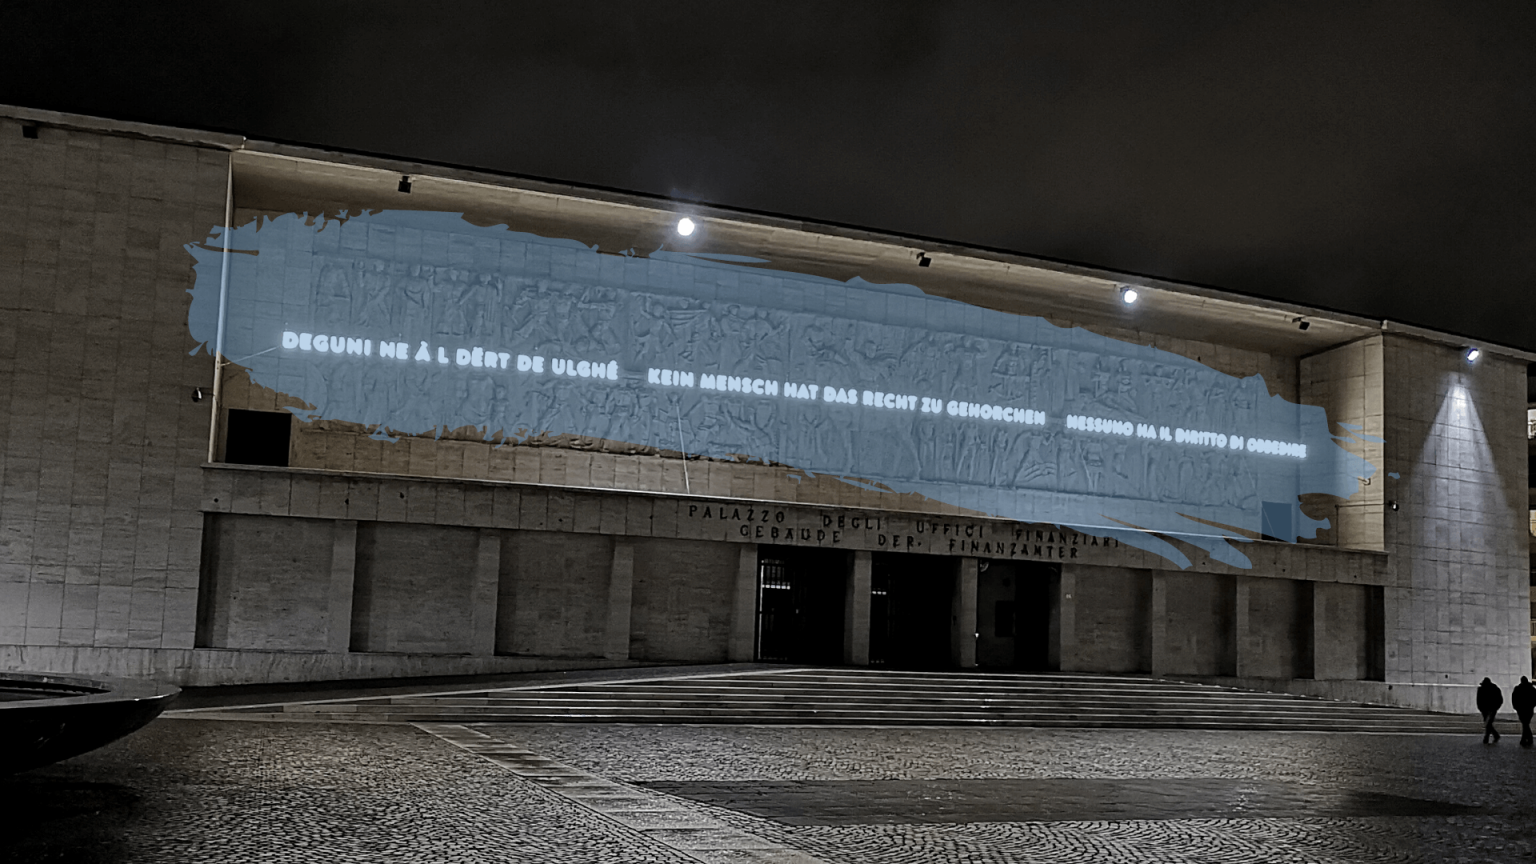 Facade of the former headquarter of the Fascist party in Bozen-Bolzano now displaying a quote by Hannah Arendt. The image has been edited with a translucent splash of blue paint across the relief.